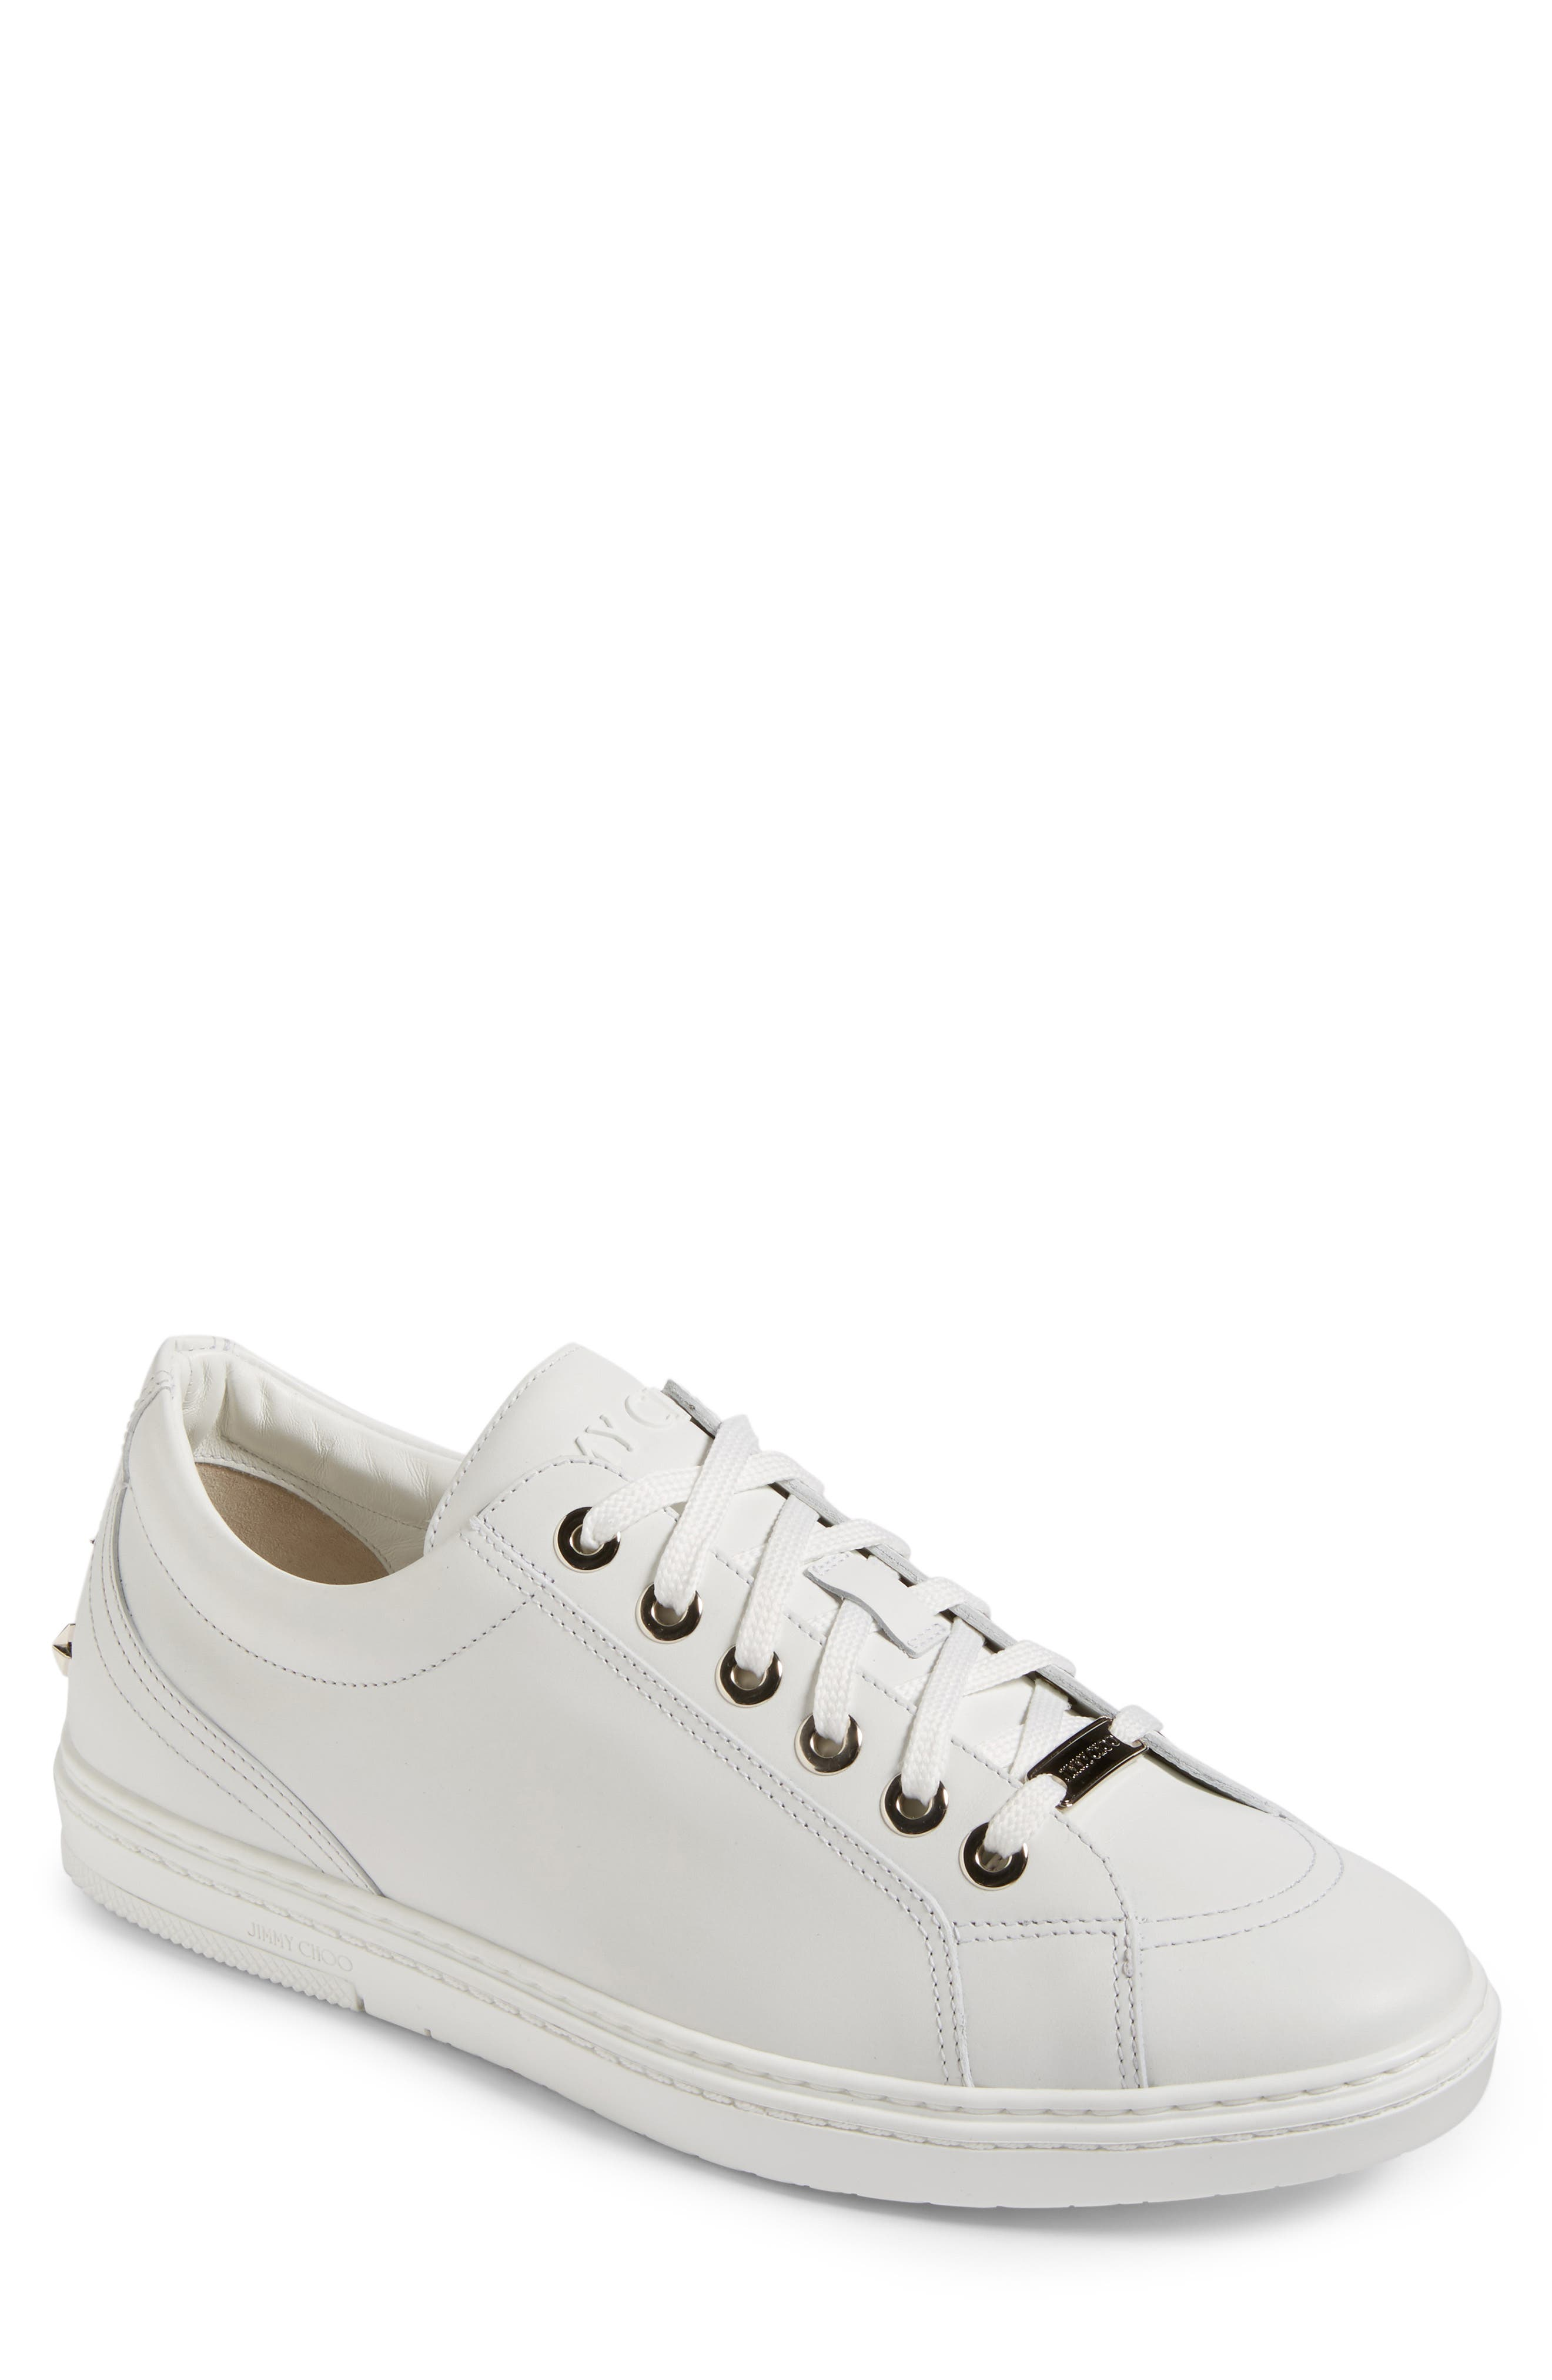 JIMMY CHOO Cash Star Sneaker